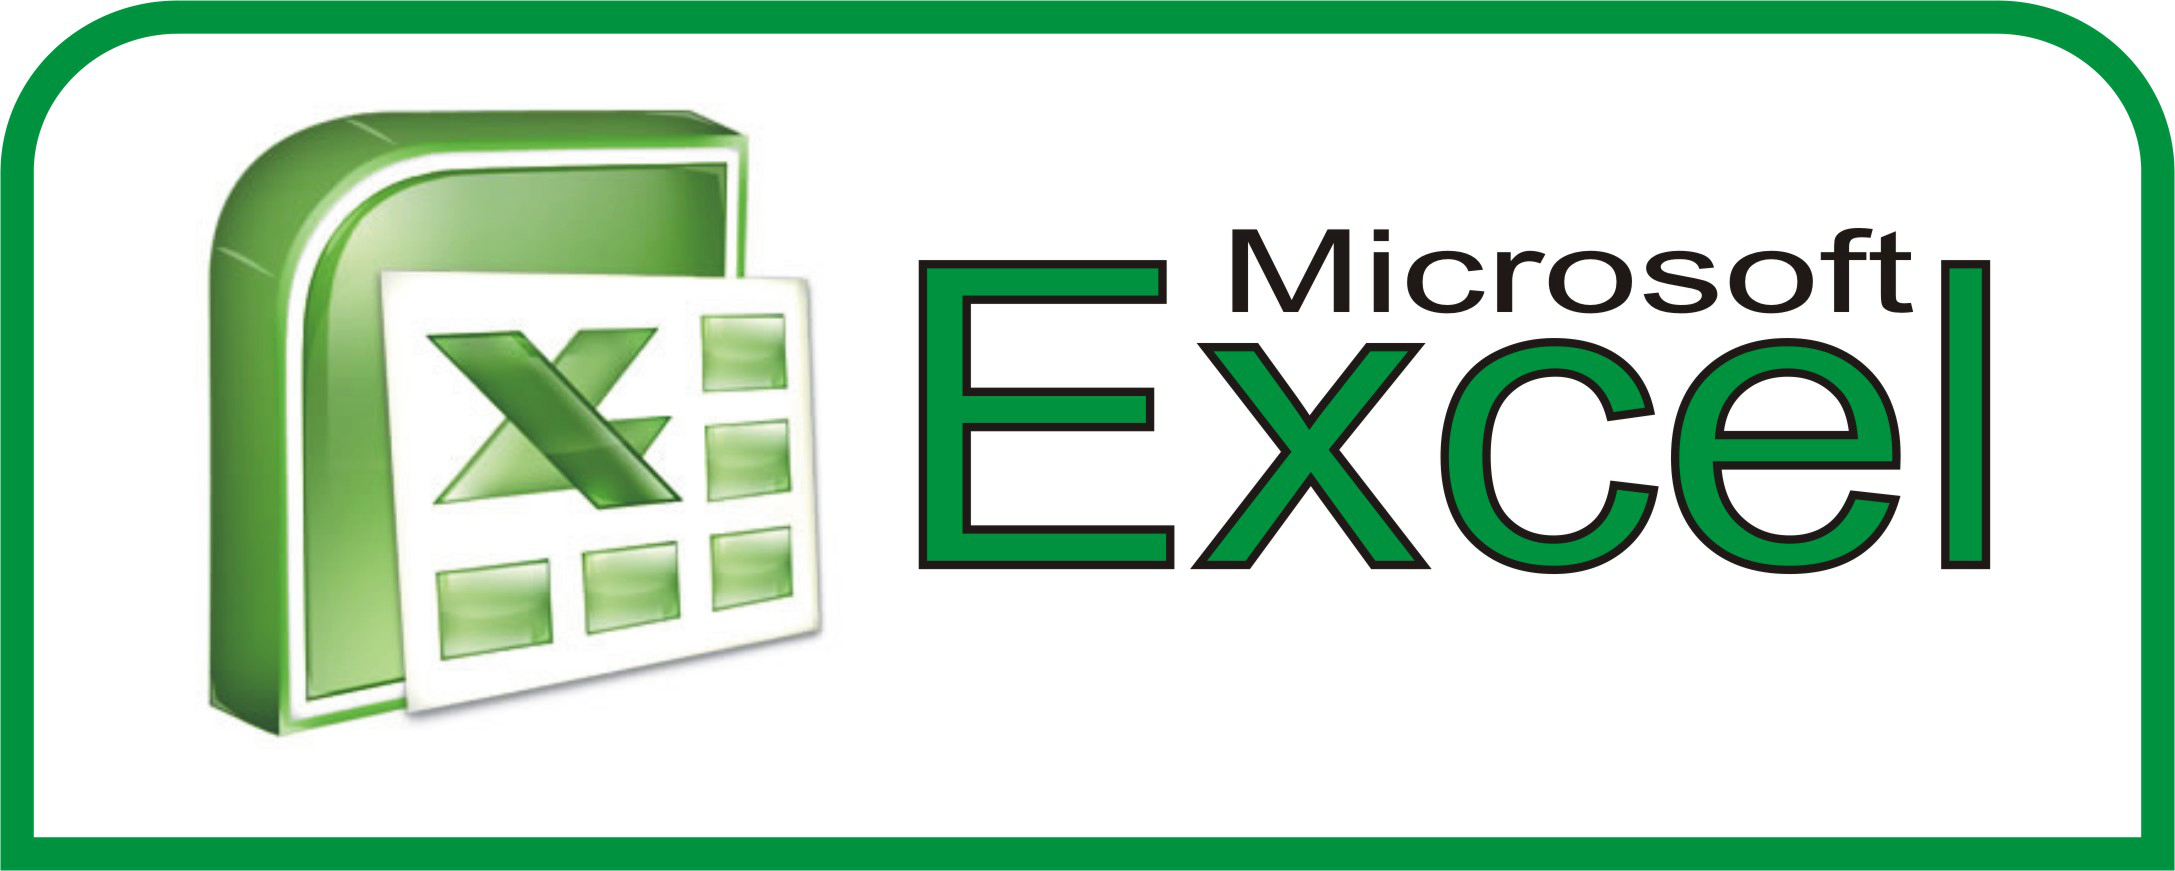 Ediblewildsus  Winning  Excel Shortcuts You Probably Didnt Know About  Techdissected With Marvelous Ms Excel Formula Pdf Download Besides Excel Unhide Tabs Furthermore How To Change Pdf To Excel With Cute The Purpose Of Microsoft Excel Also The Purpose Of Microsoft Excel In Addition Save Excel With Password  And Excel For Macs As Well As Trend Line In Excel  Additionally Add Watermark In Excel From Techdissectedcom With Ediblewildsus  Marvelous  Excel Shortcuts You Probably Didnt Know About  Techdissected With Cute Ms Excel Formula Pdf Download Besides Excel Unhide Tabs Furthermore How To Change Pdf To Excel And Winning The Purpose Of Microsoft Excel Also The Purpose Of Microsoft Excel In Addition Save Excel With Password  From Techdissectedcom